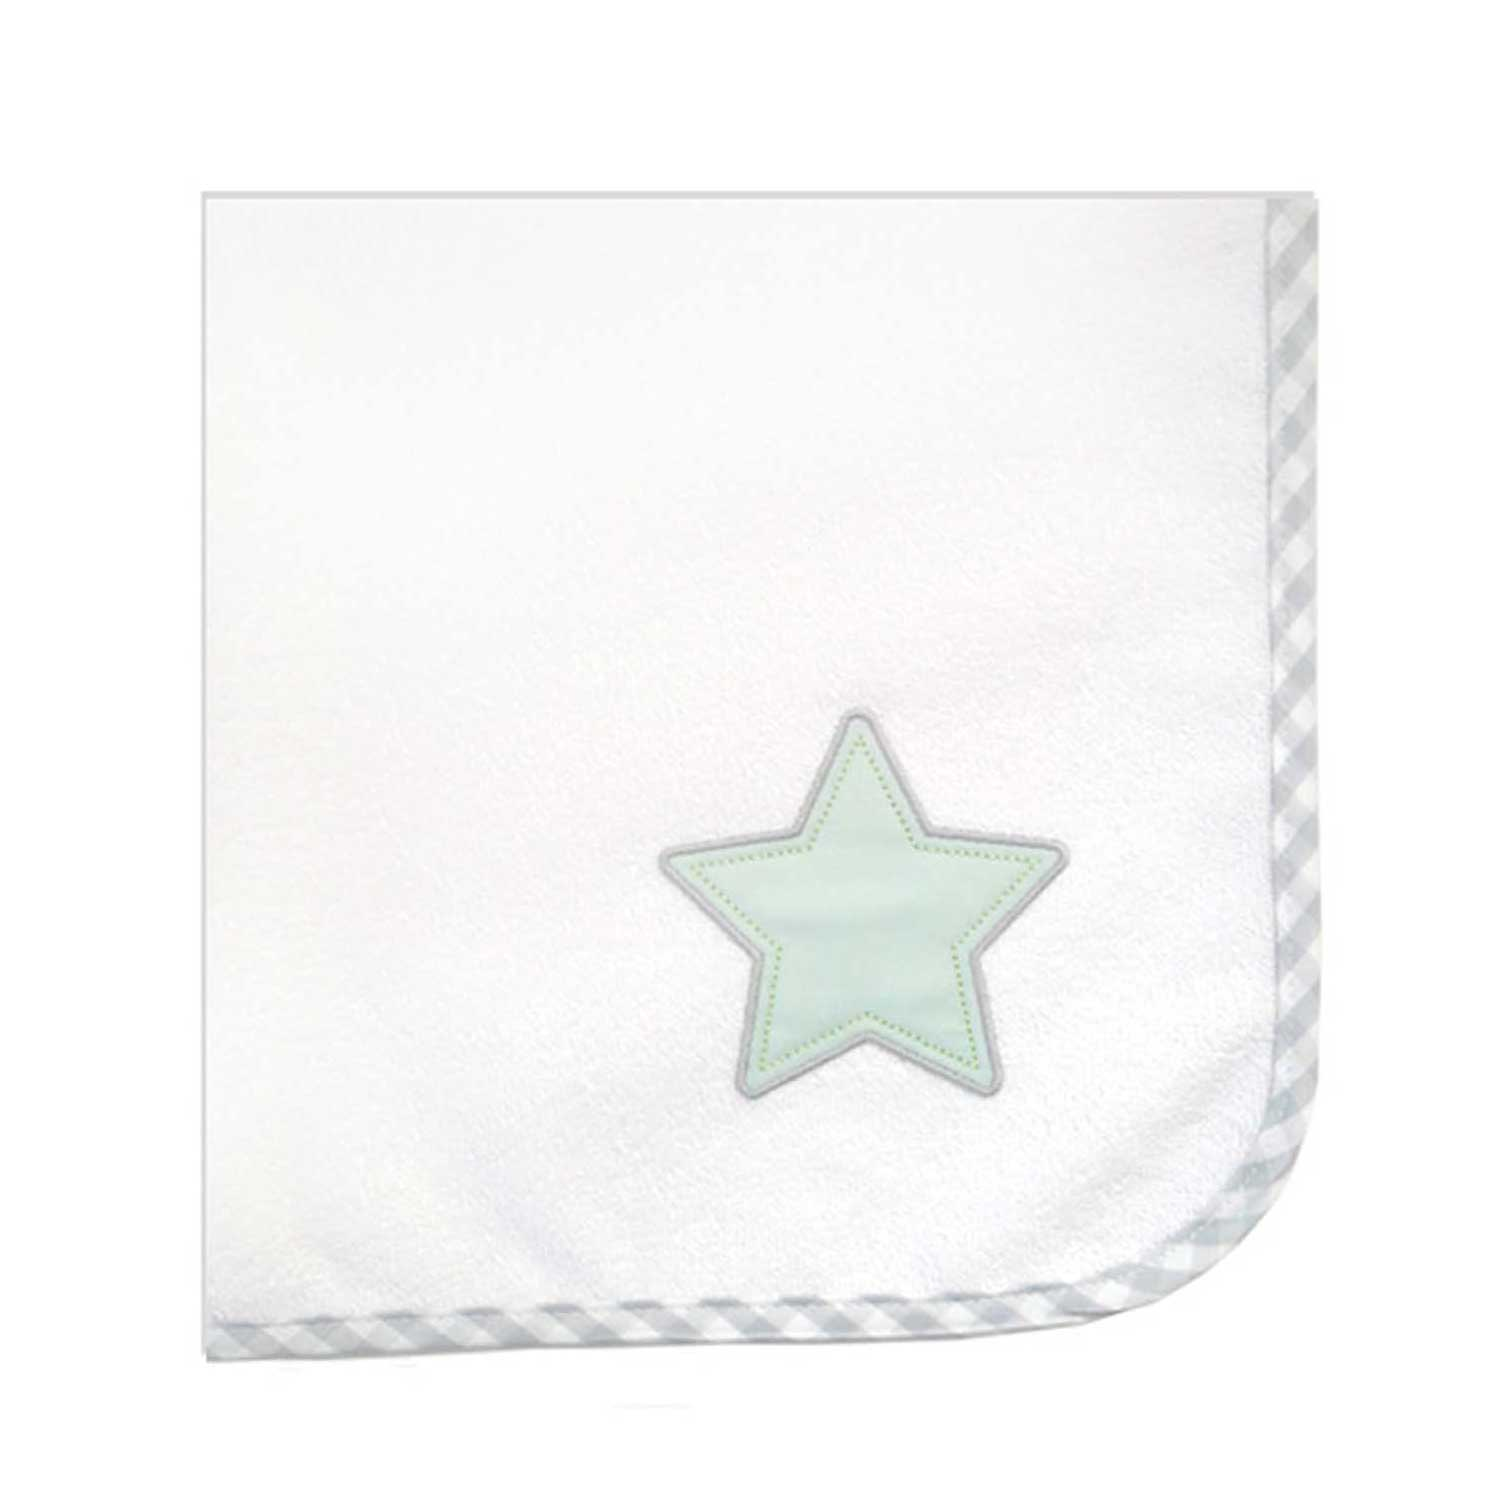 Σελτεδάκι Βρεφικό Des.304 Lucky Star White-Green Baby Oliver 50x70cm